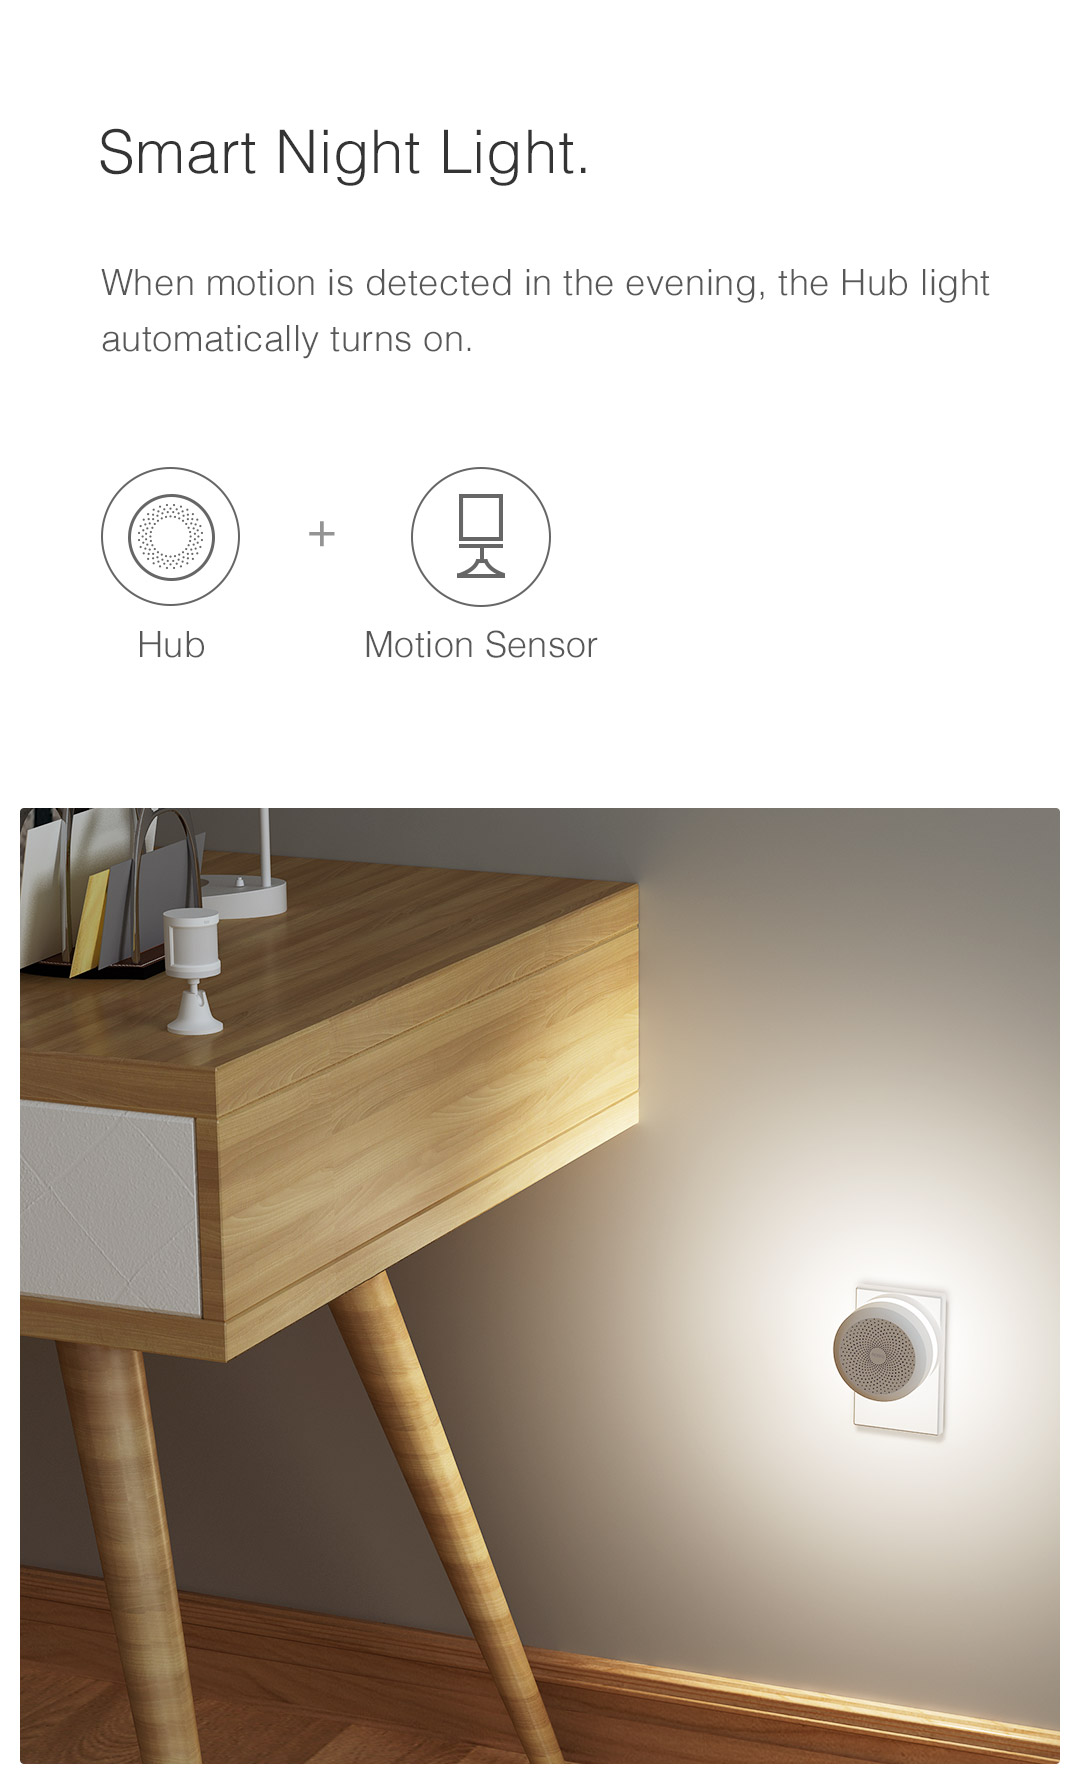 When Aqara body motion sensor is triggered at night, the Hub light automatically turns on.